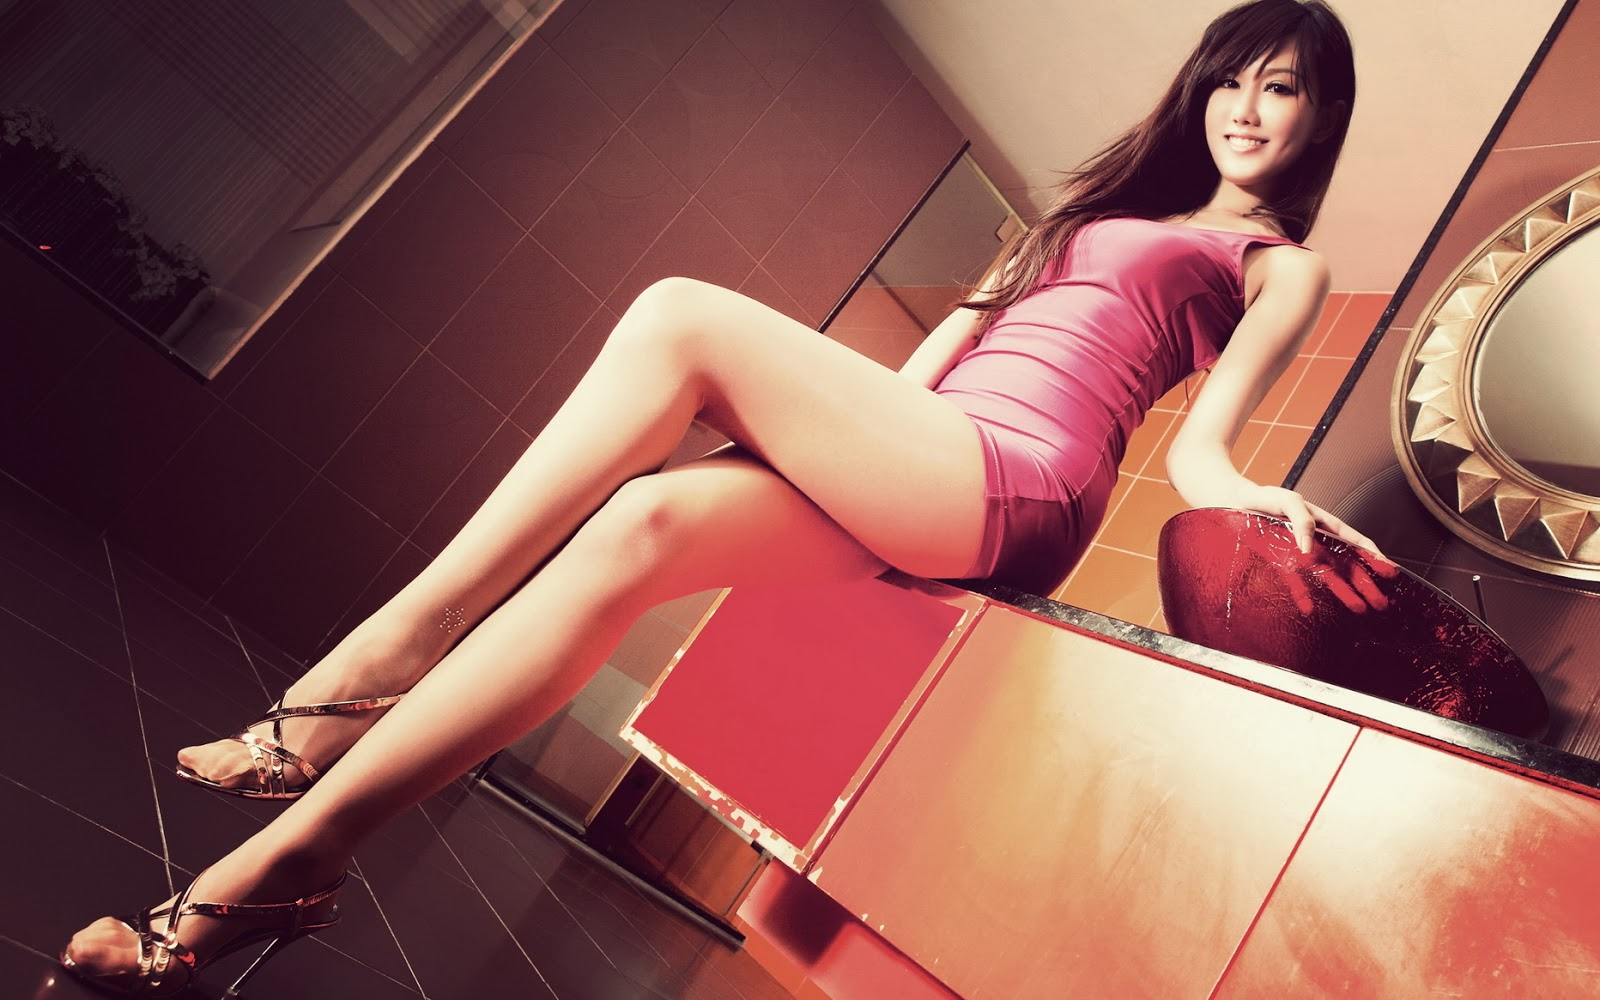 Sexy Asian Girls Wallpapers